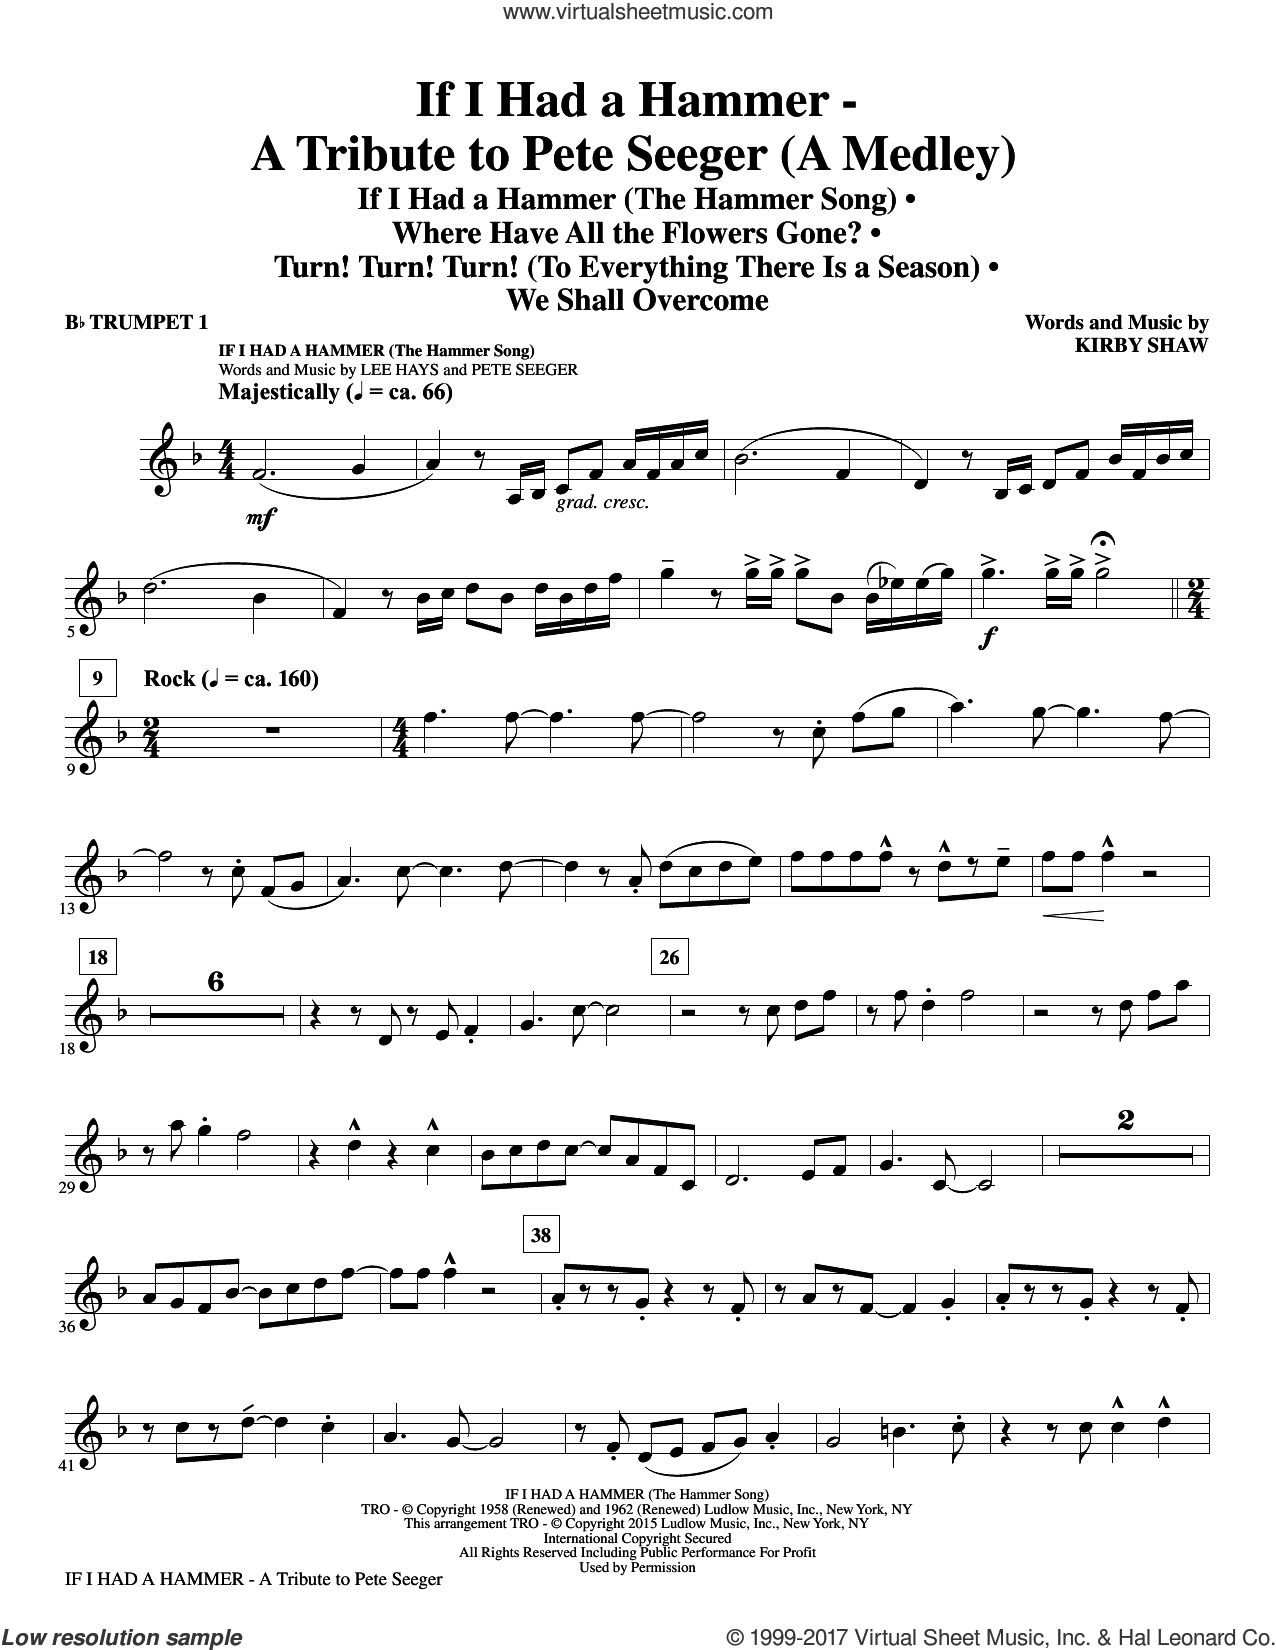 If I Had A Hammer - A Tribute to Pete Seeger (complete set of parts) sheet music for orchestra/band by Kirby Shaw, Lee Hays, Pete Seeger, Peter, Paul & Mary and Trini Lopez, intermediate skill level